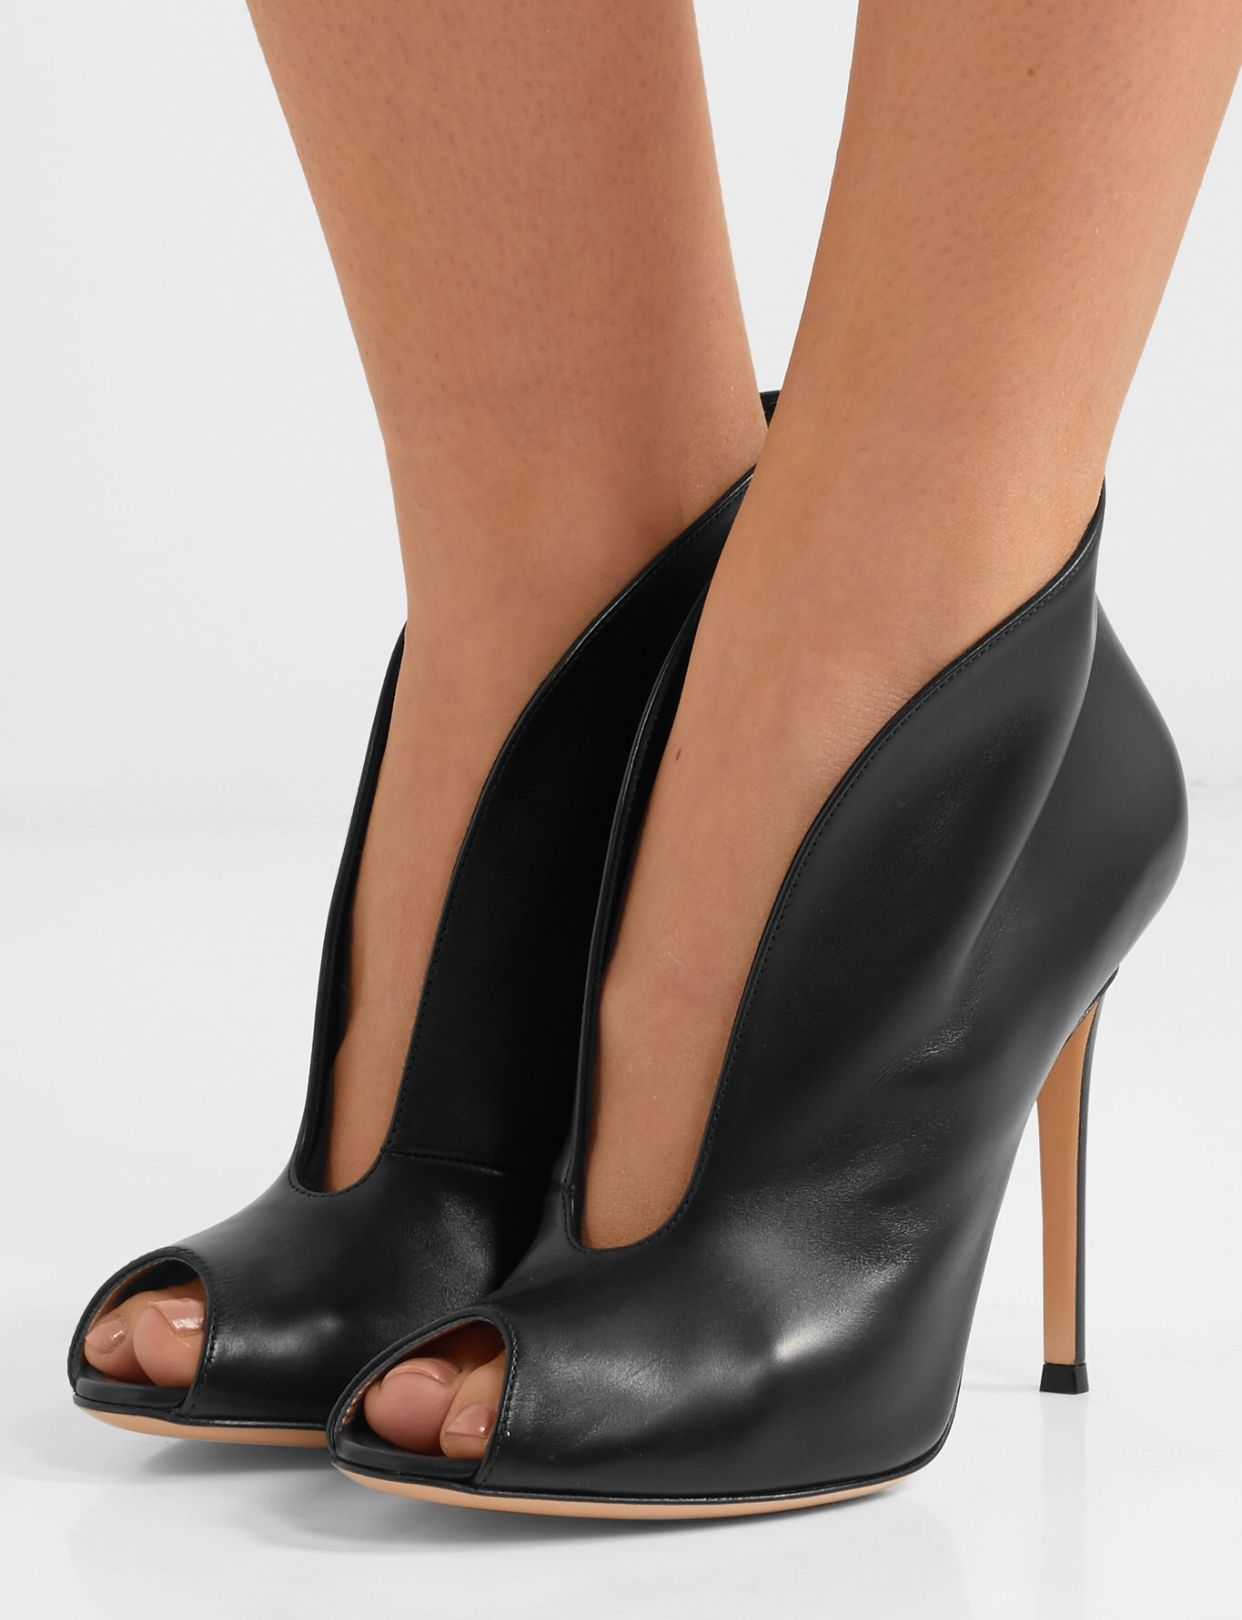 Pin by Jabf13v on Zapatillas | Womens shoes high heels